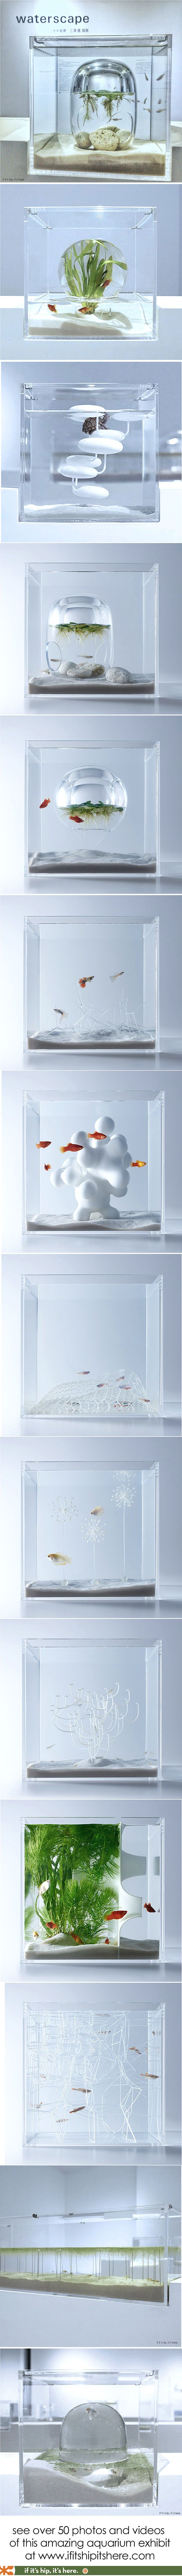 The Waterscape Aquarium Exhibit held at the Misawa Design Institute features a series of small architectural and artsy fish tanks designed by Hakura Misawa. See 50 amazing photos of the aquariums and exhibit at http://www.ifitshipitshere.com/waterscape-aquariums/